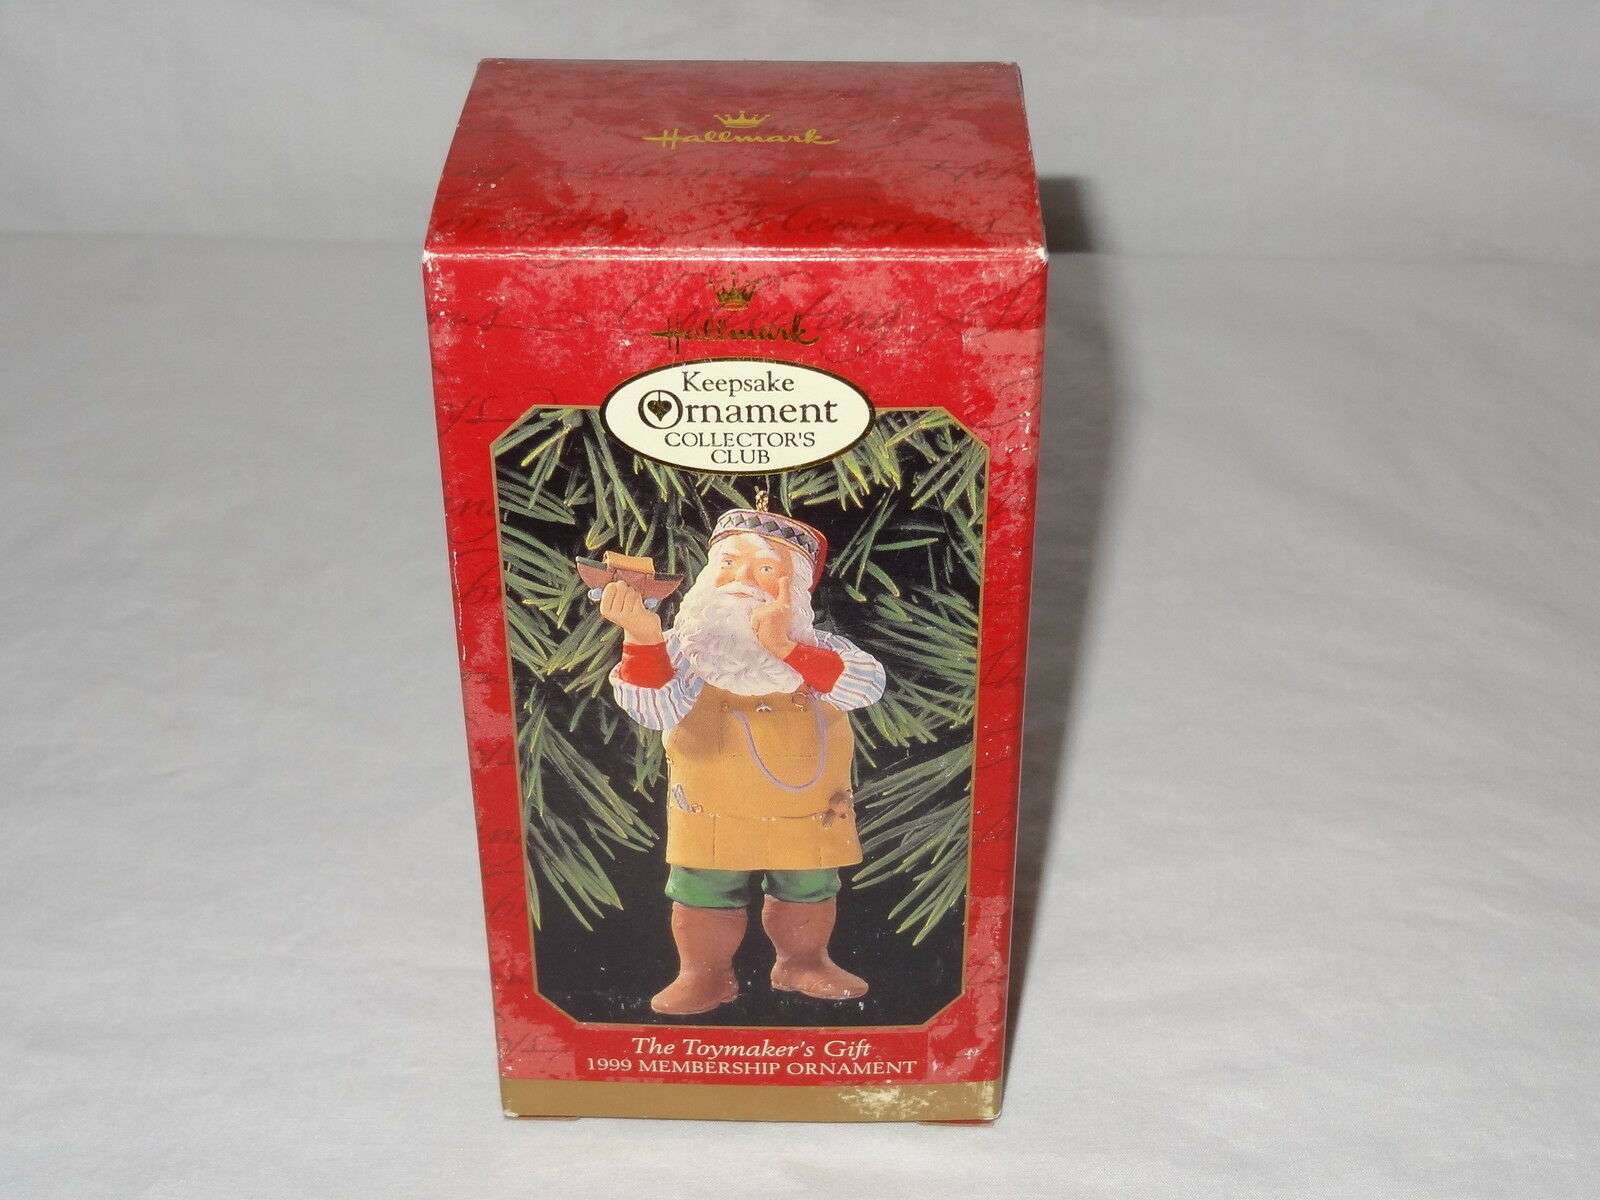 1999 Hallmark Ornaments Toymakers Gift Series Santa Keepsake Collectors Club image 8